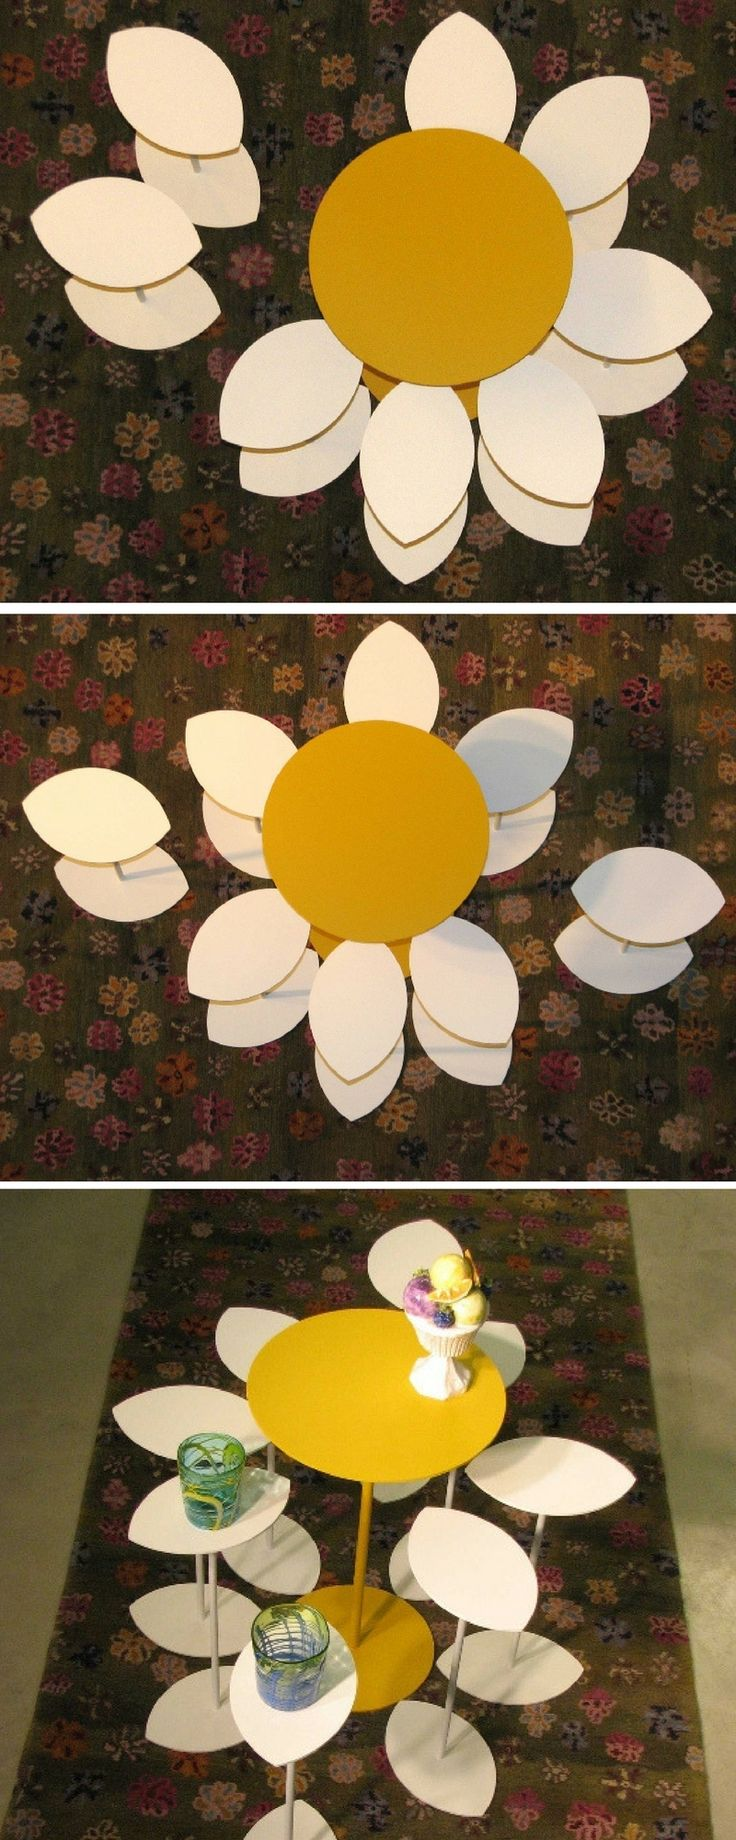 Coffee Table M'ama non m'ama. Multifunctional table, unconventional design table: Daisy Loves me Loves me not.